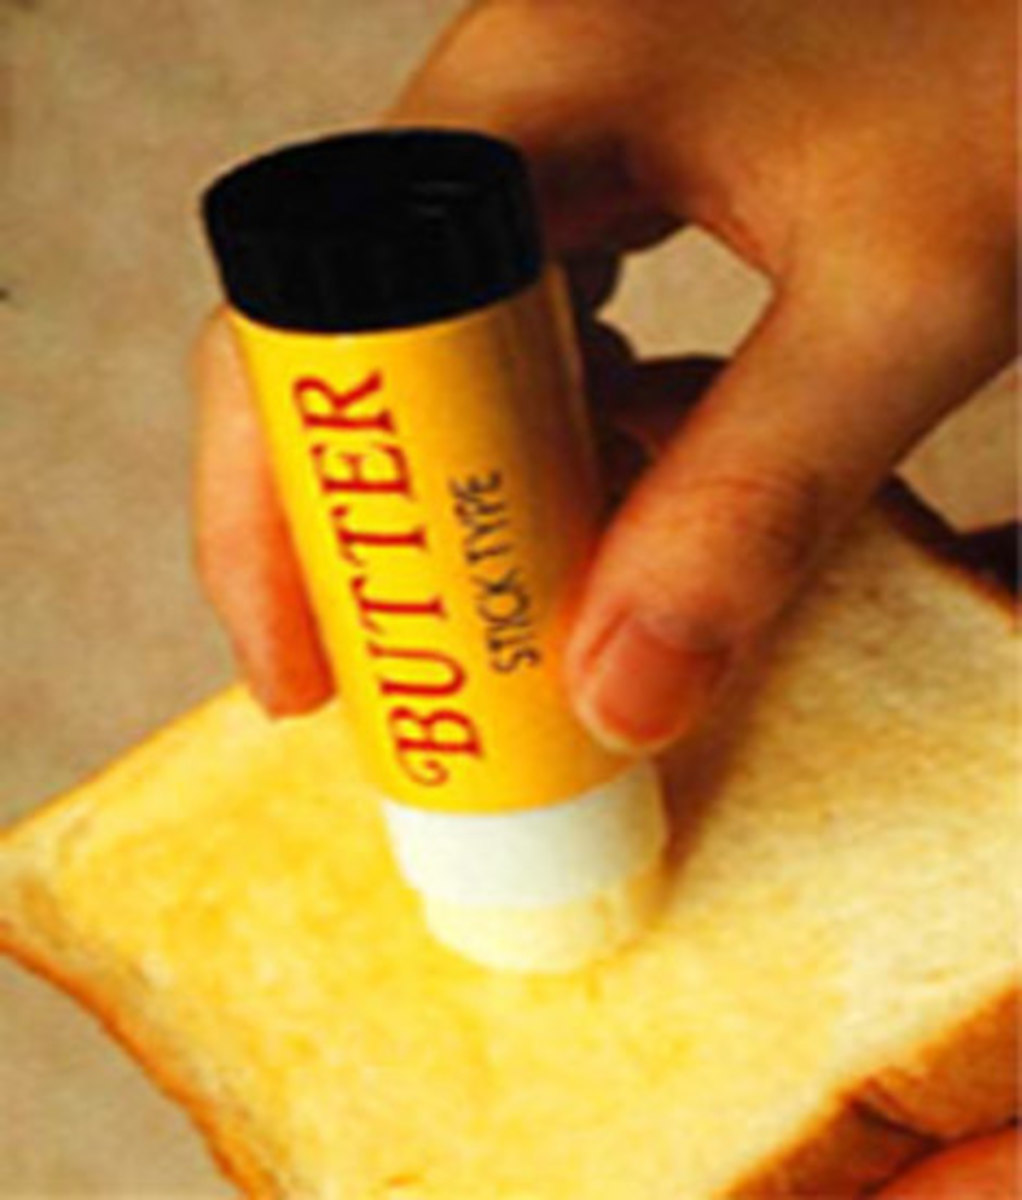 STICK hehe BUTTER for the LAZY